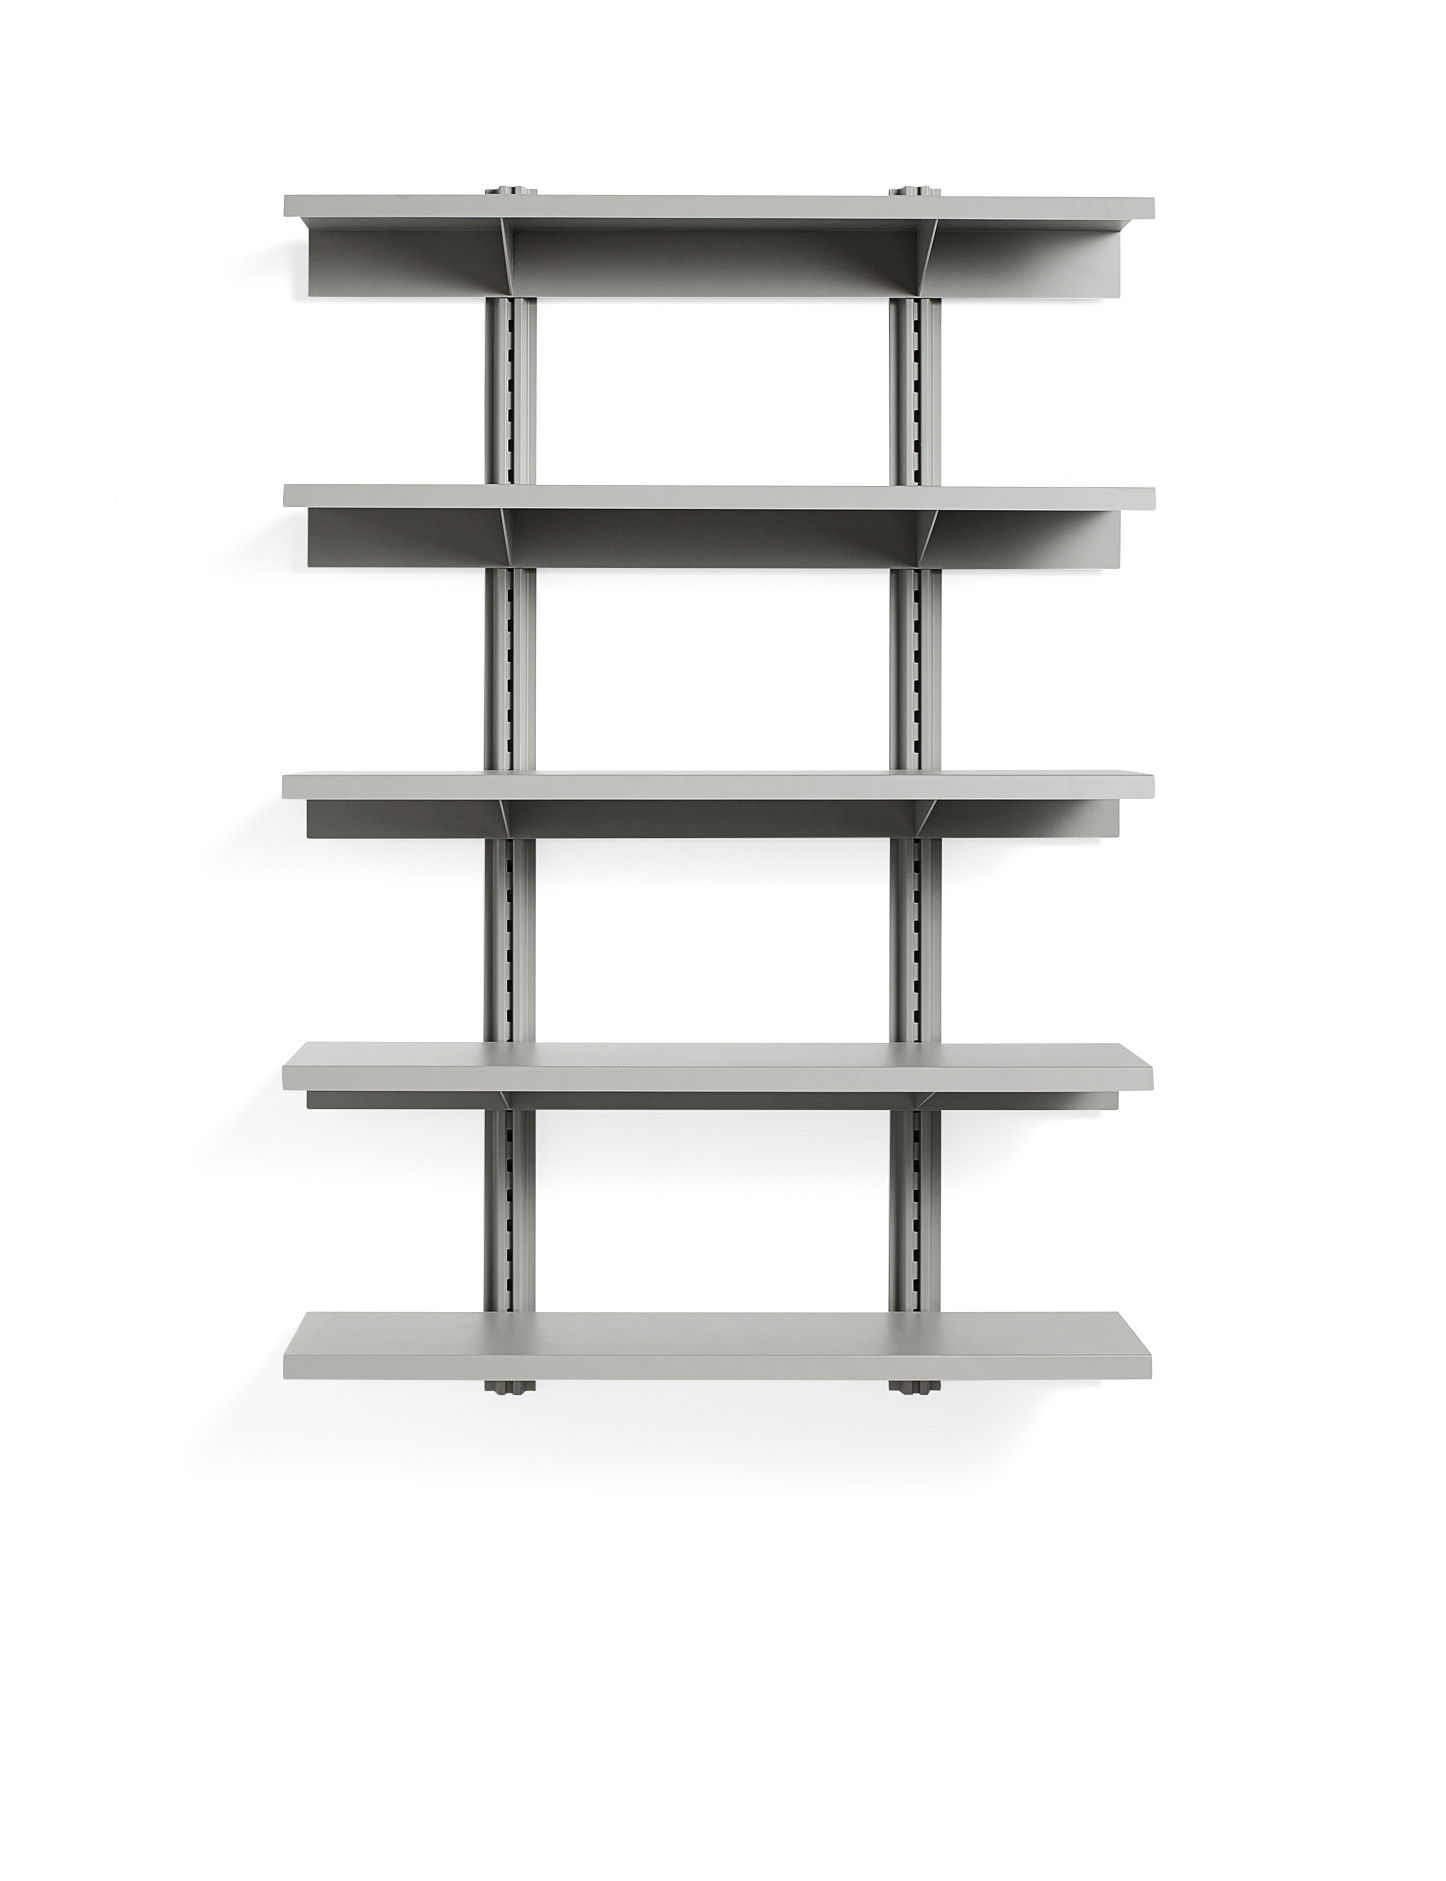 Furniture - Bookcases & Bookshelves - Standard Issue Shelf - / L 120 x H 180 cm - Steel by Hay - Grey - Epoxy lacquered steel